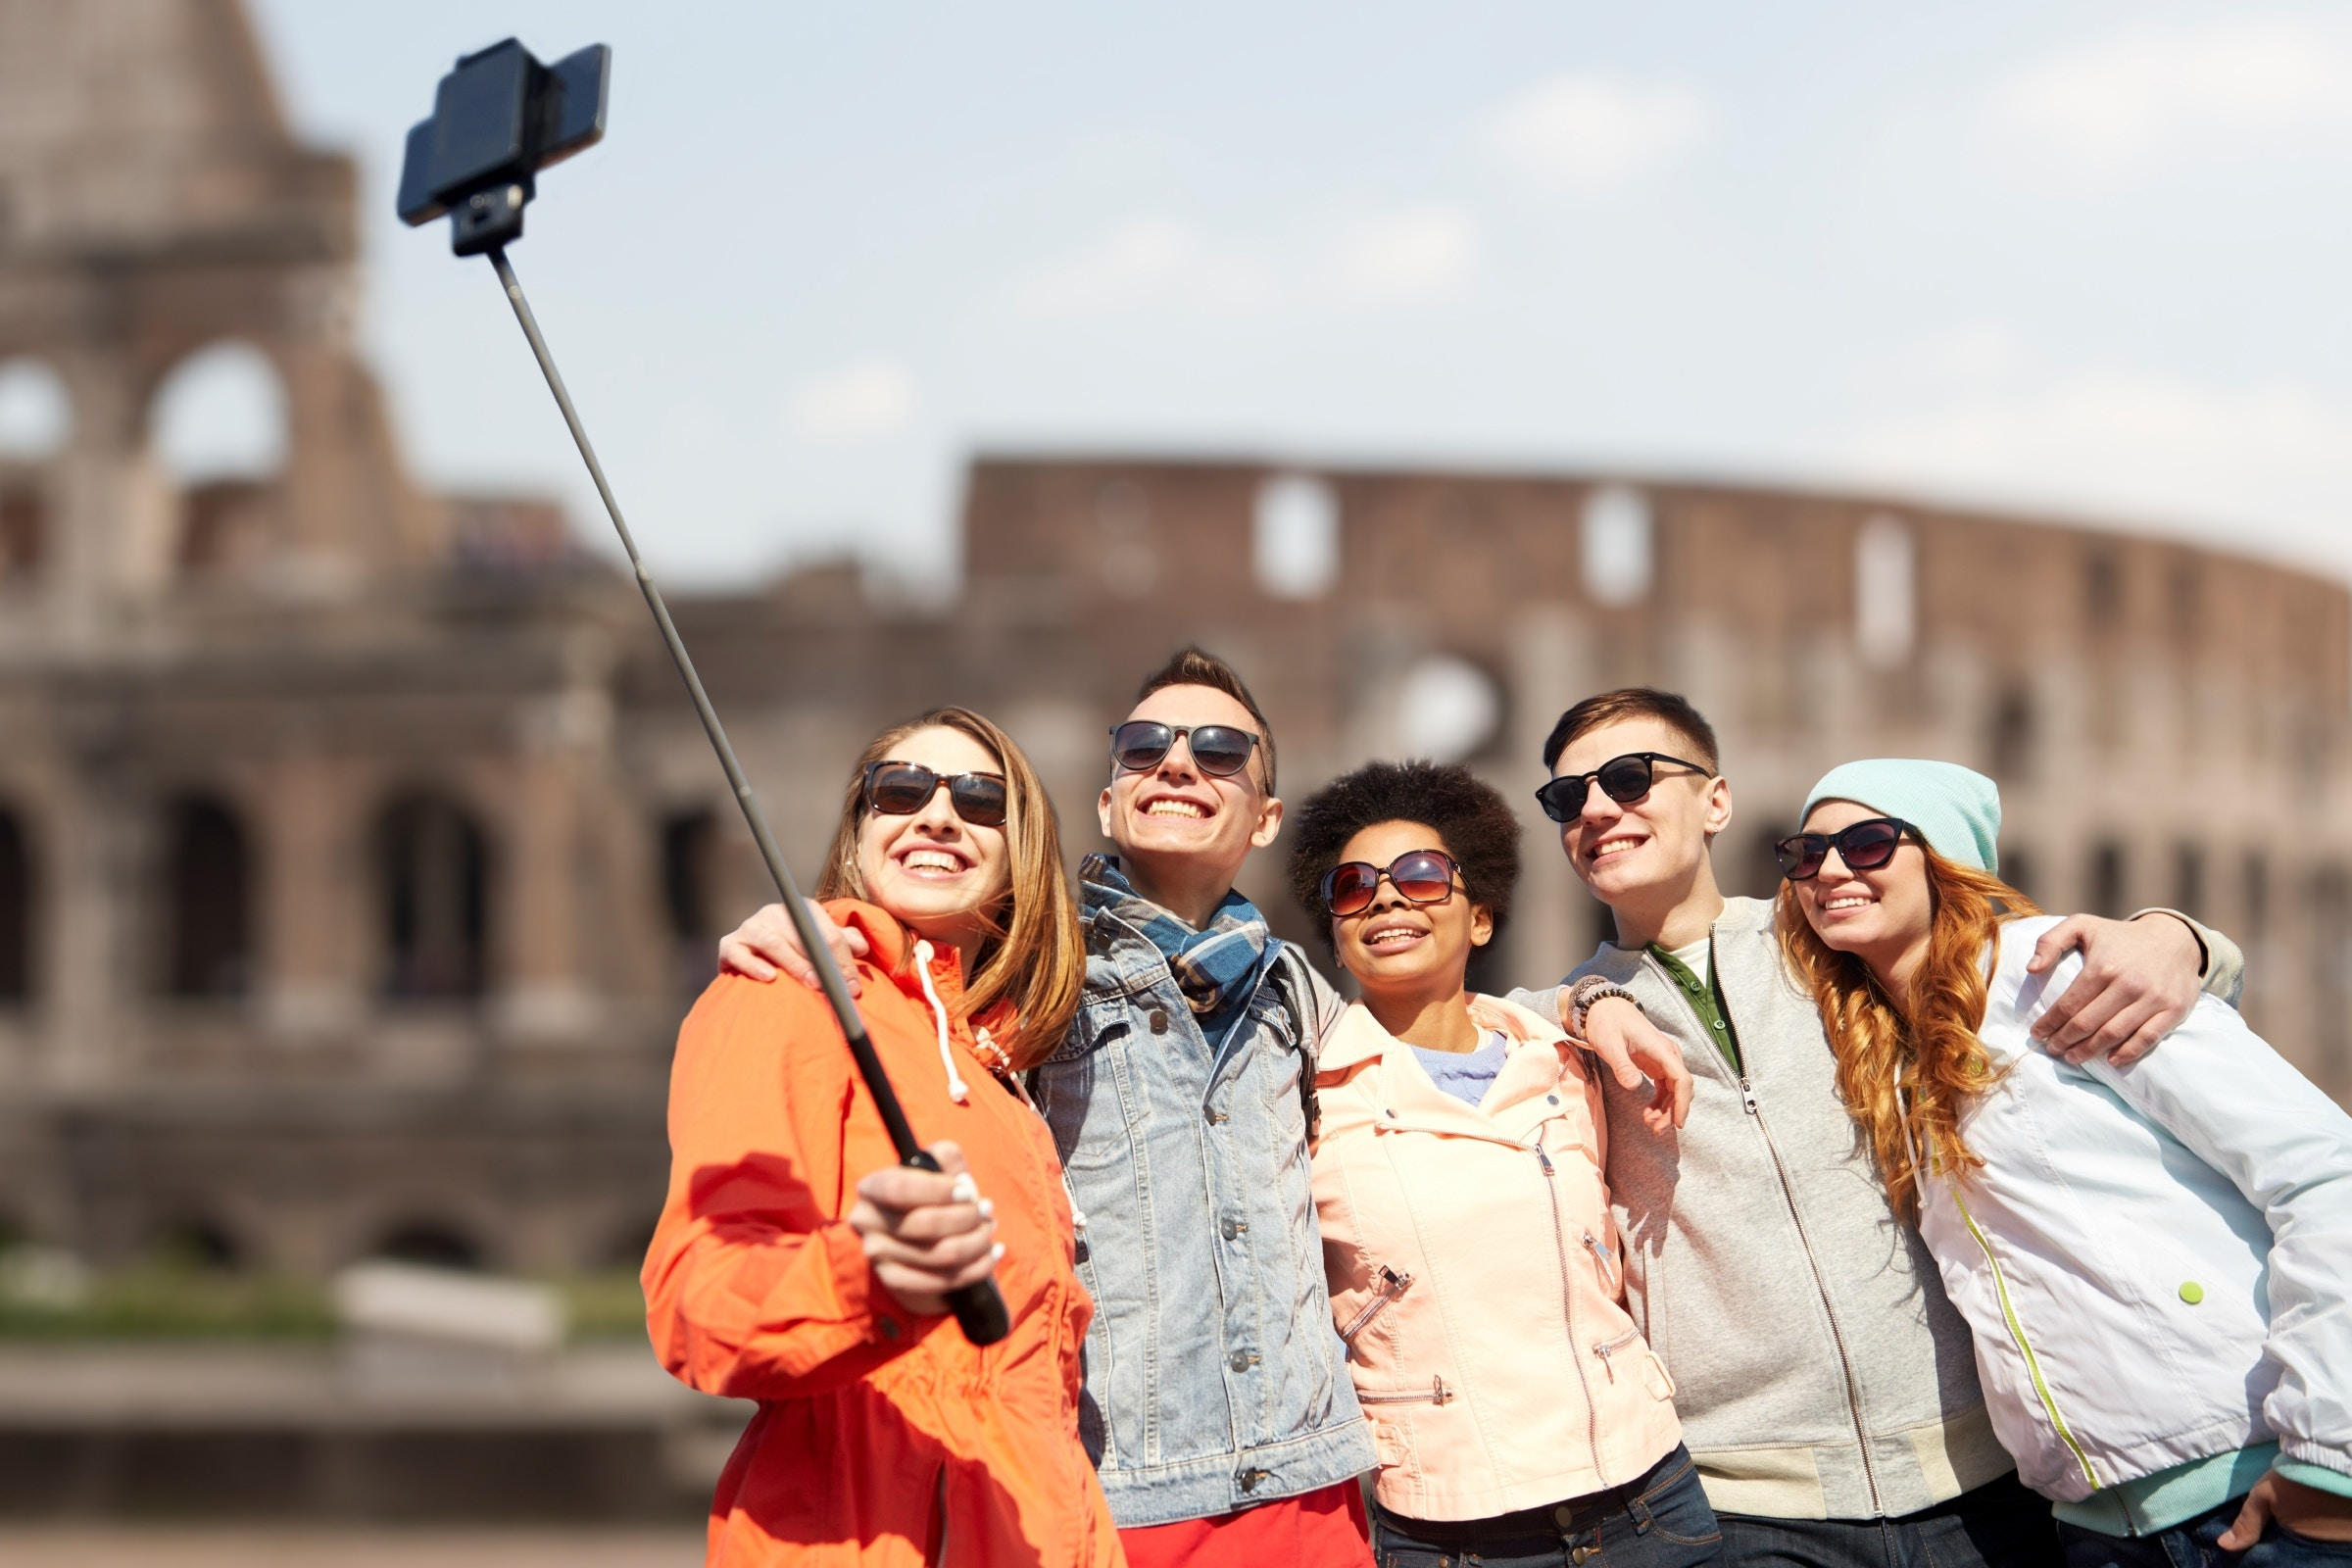 Group of smiling teenage friends taking selfie with smartphone and monopod with the Colosseum ruins in background © Syda Productions / Shutterstock